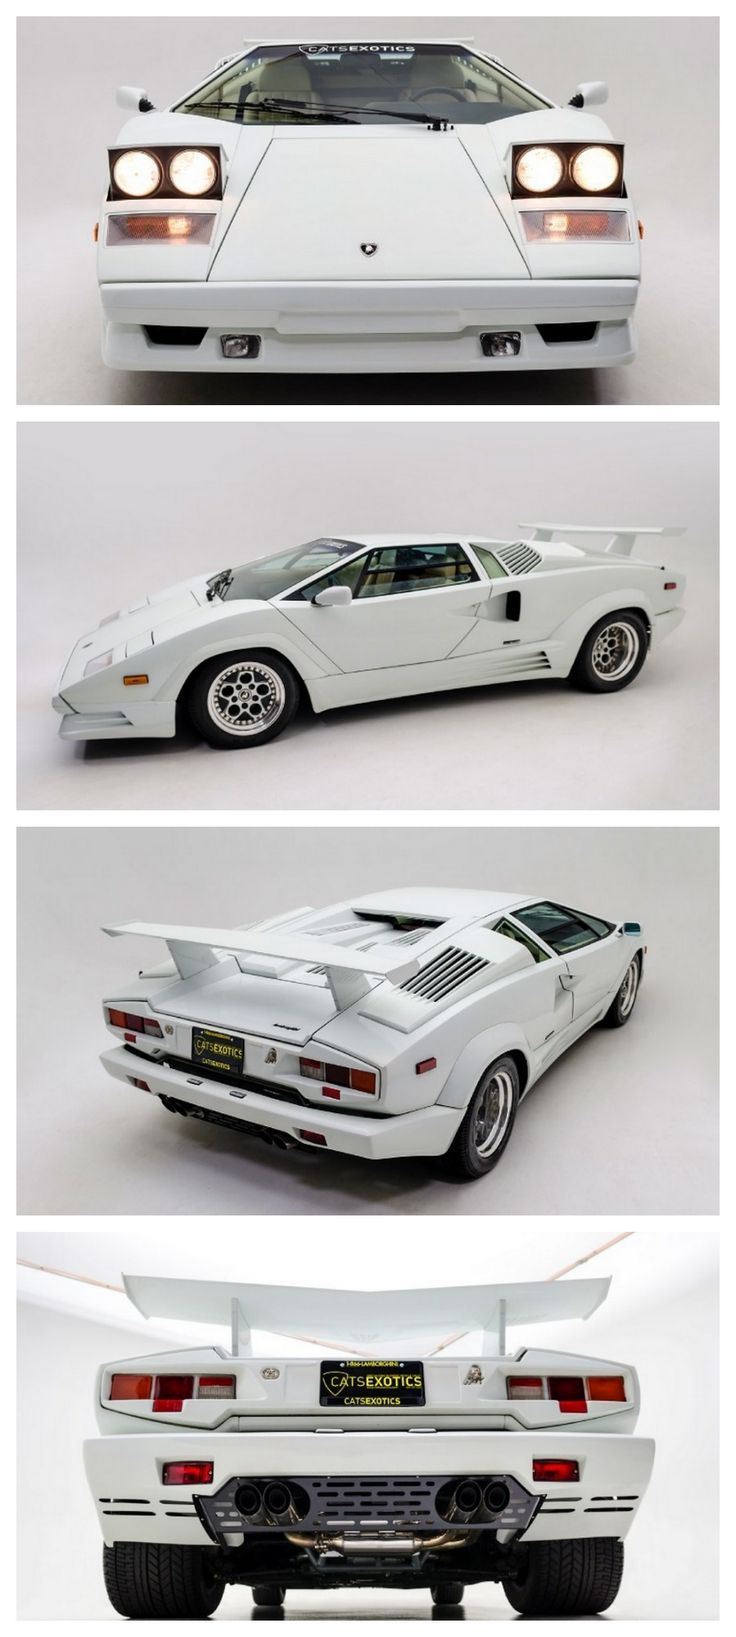 Rare 25th Anniversary Edition Countach Fuel Injected #TurboTuesday